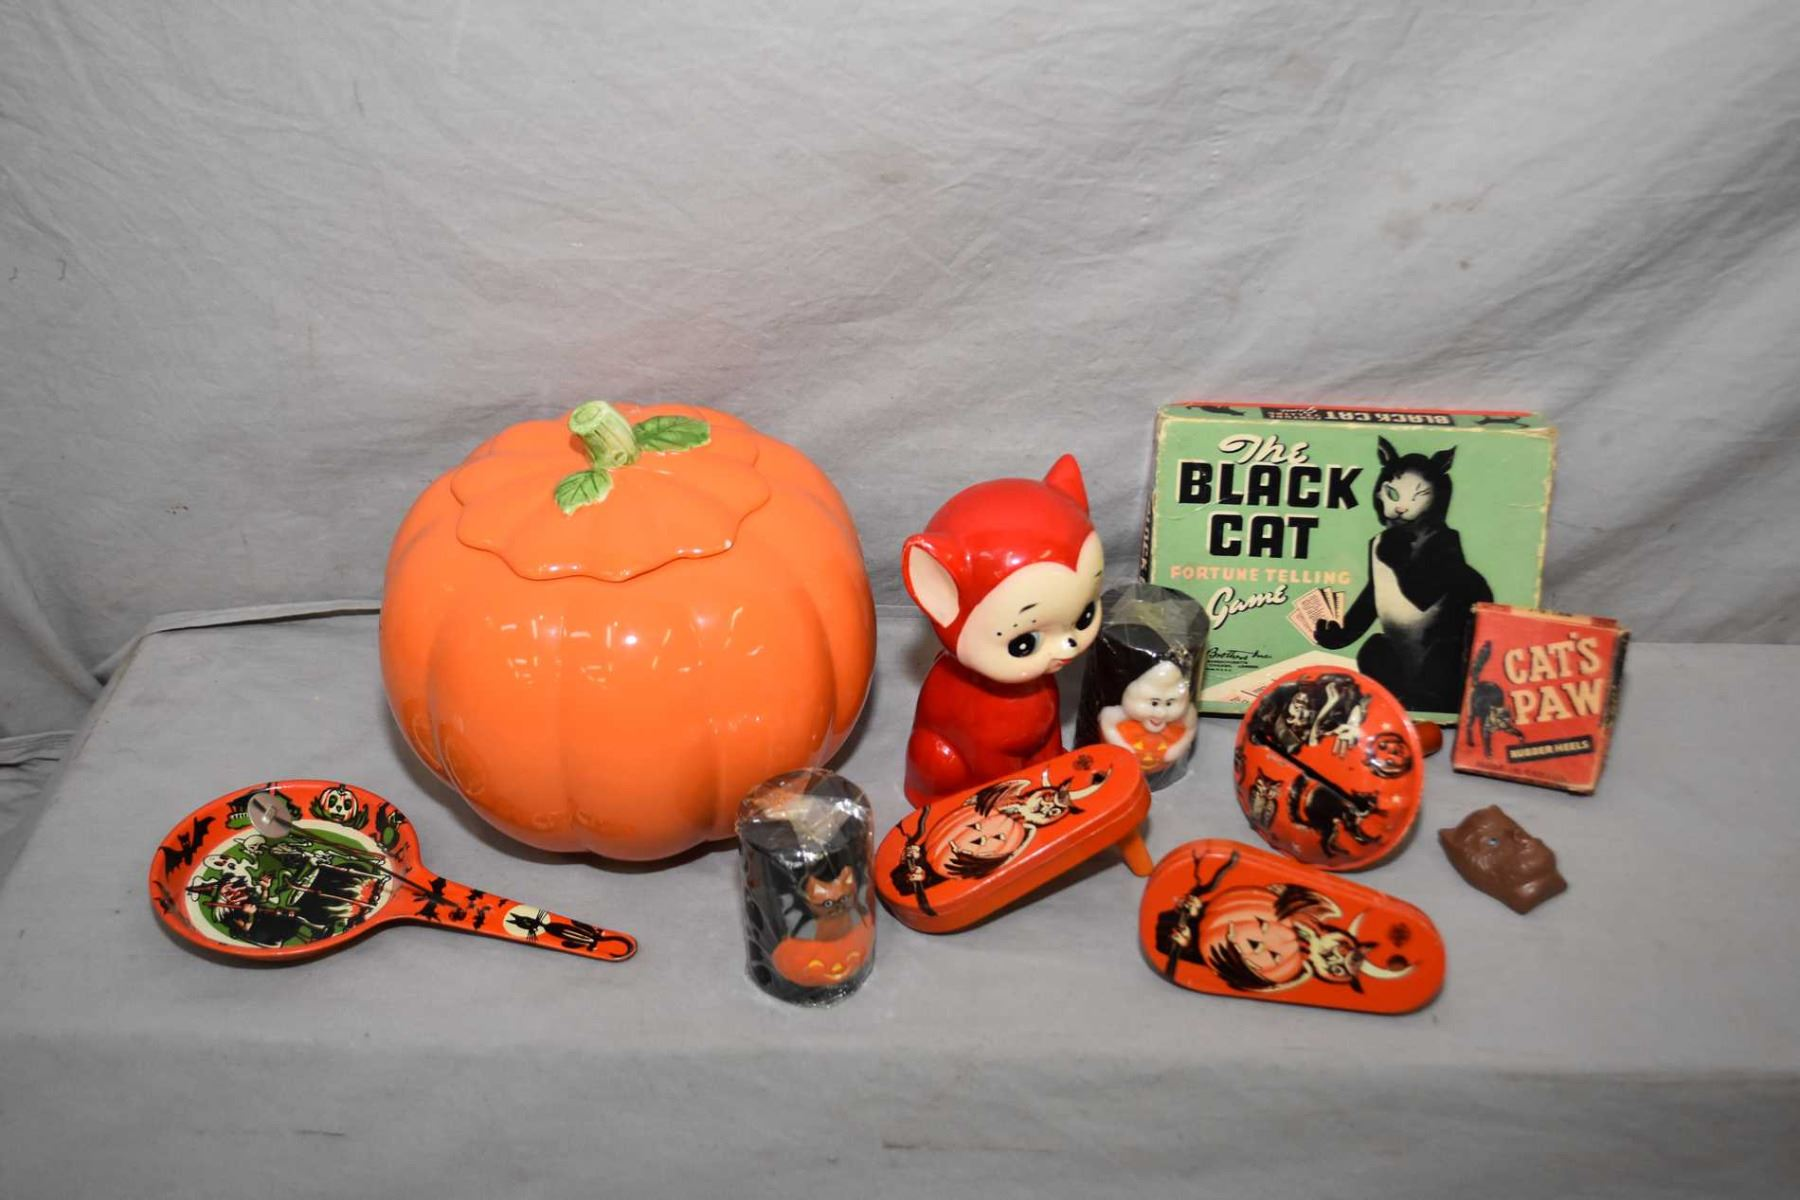 image 1 selection of vintage halloween collectibles including noise makers cat piggy bank